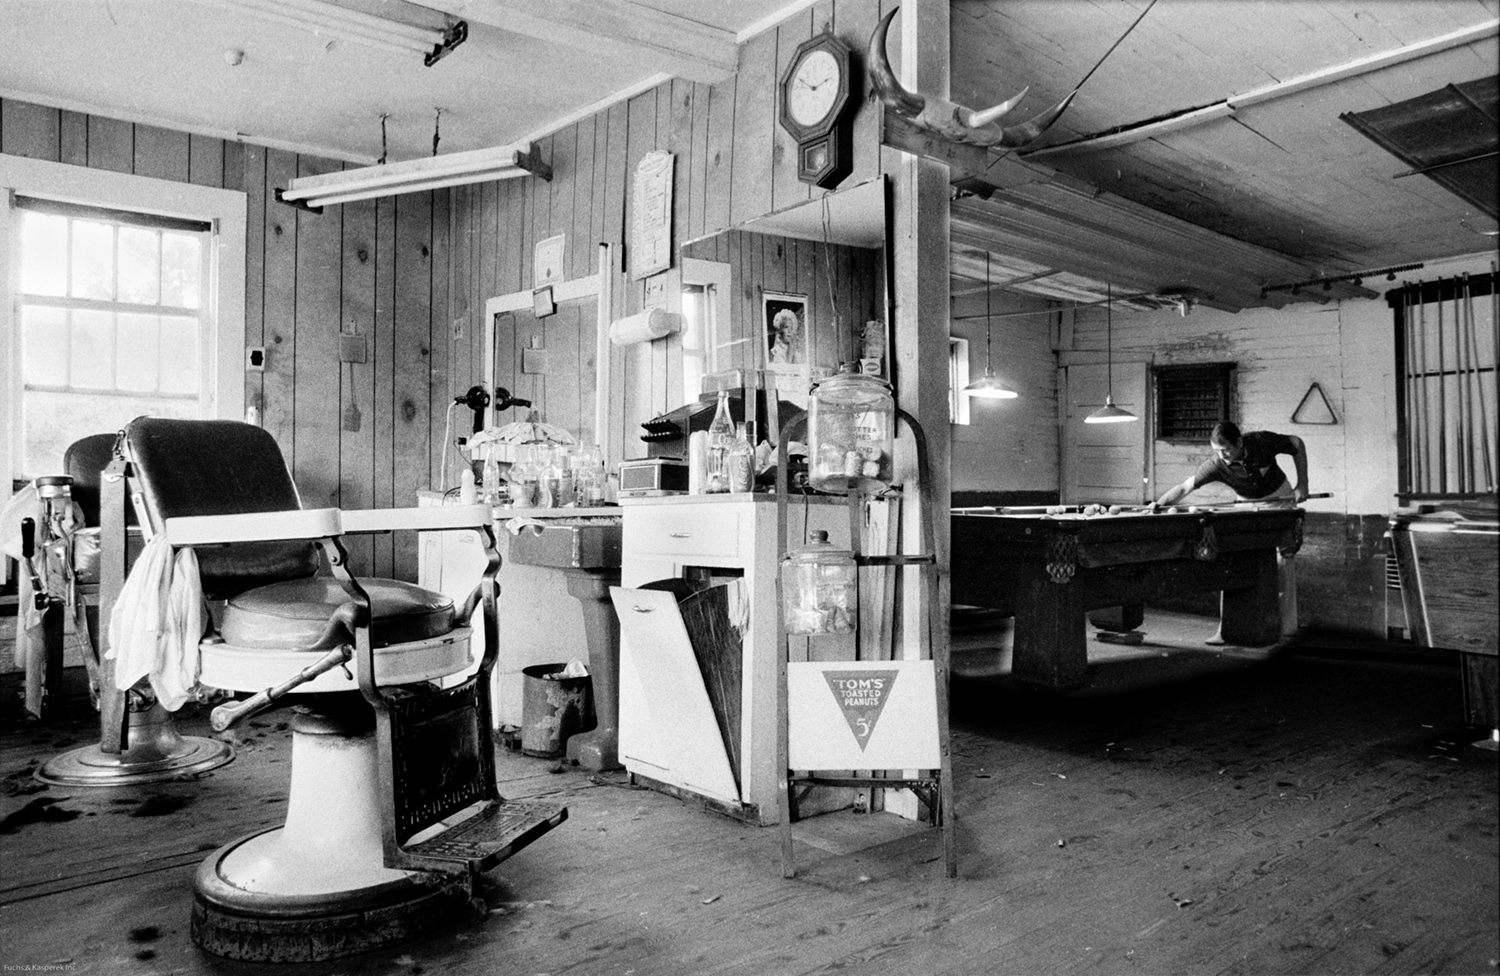 Sonny's Pool Room and Barber Shop Noxapater, MS 1978